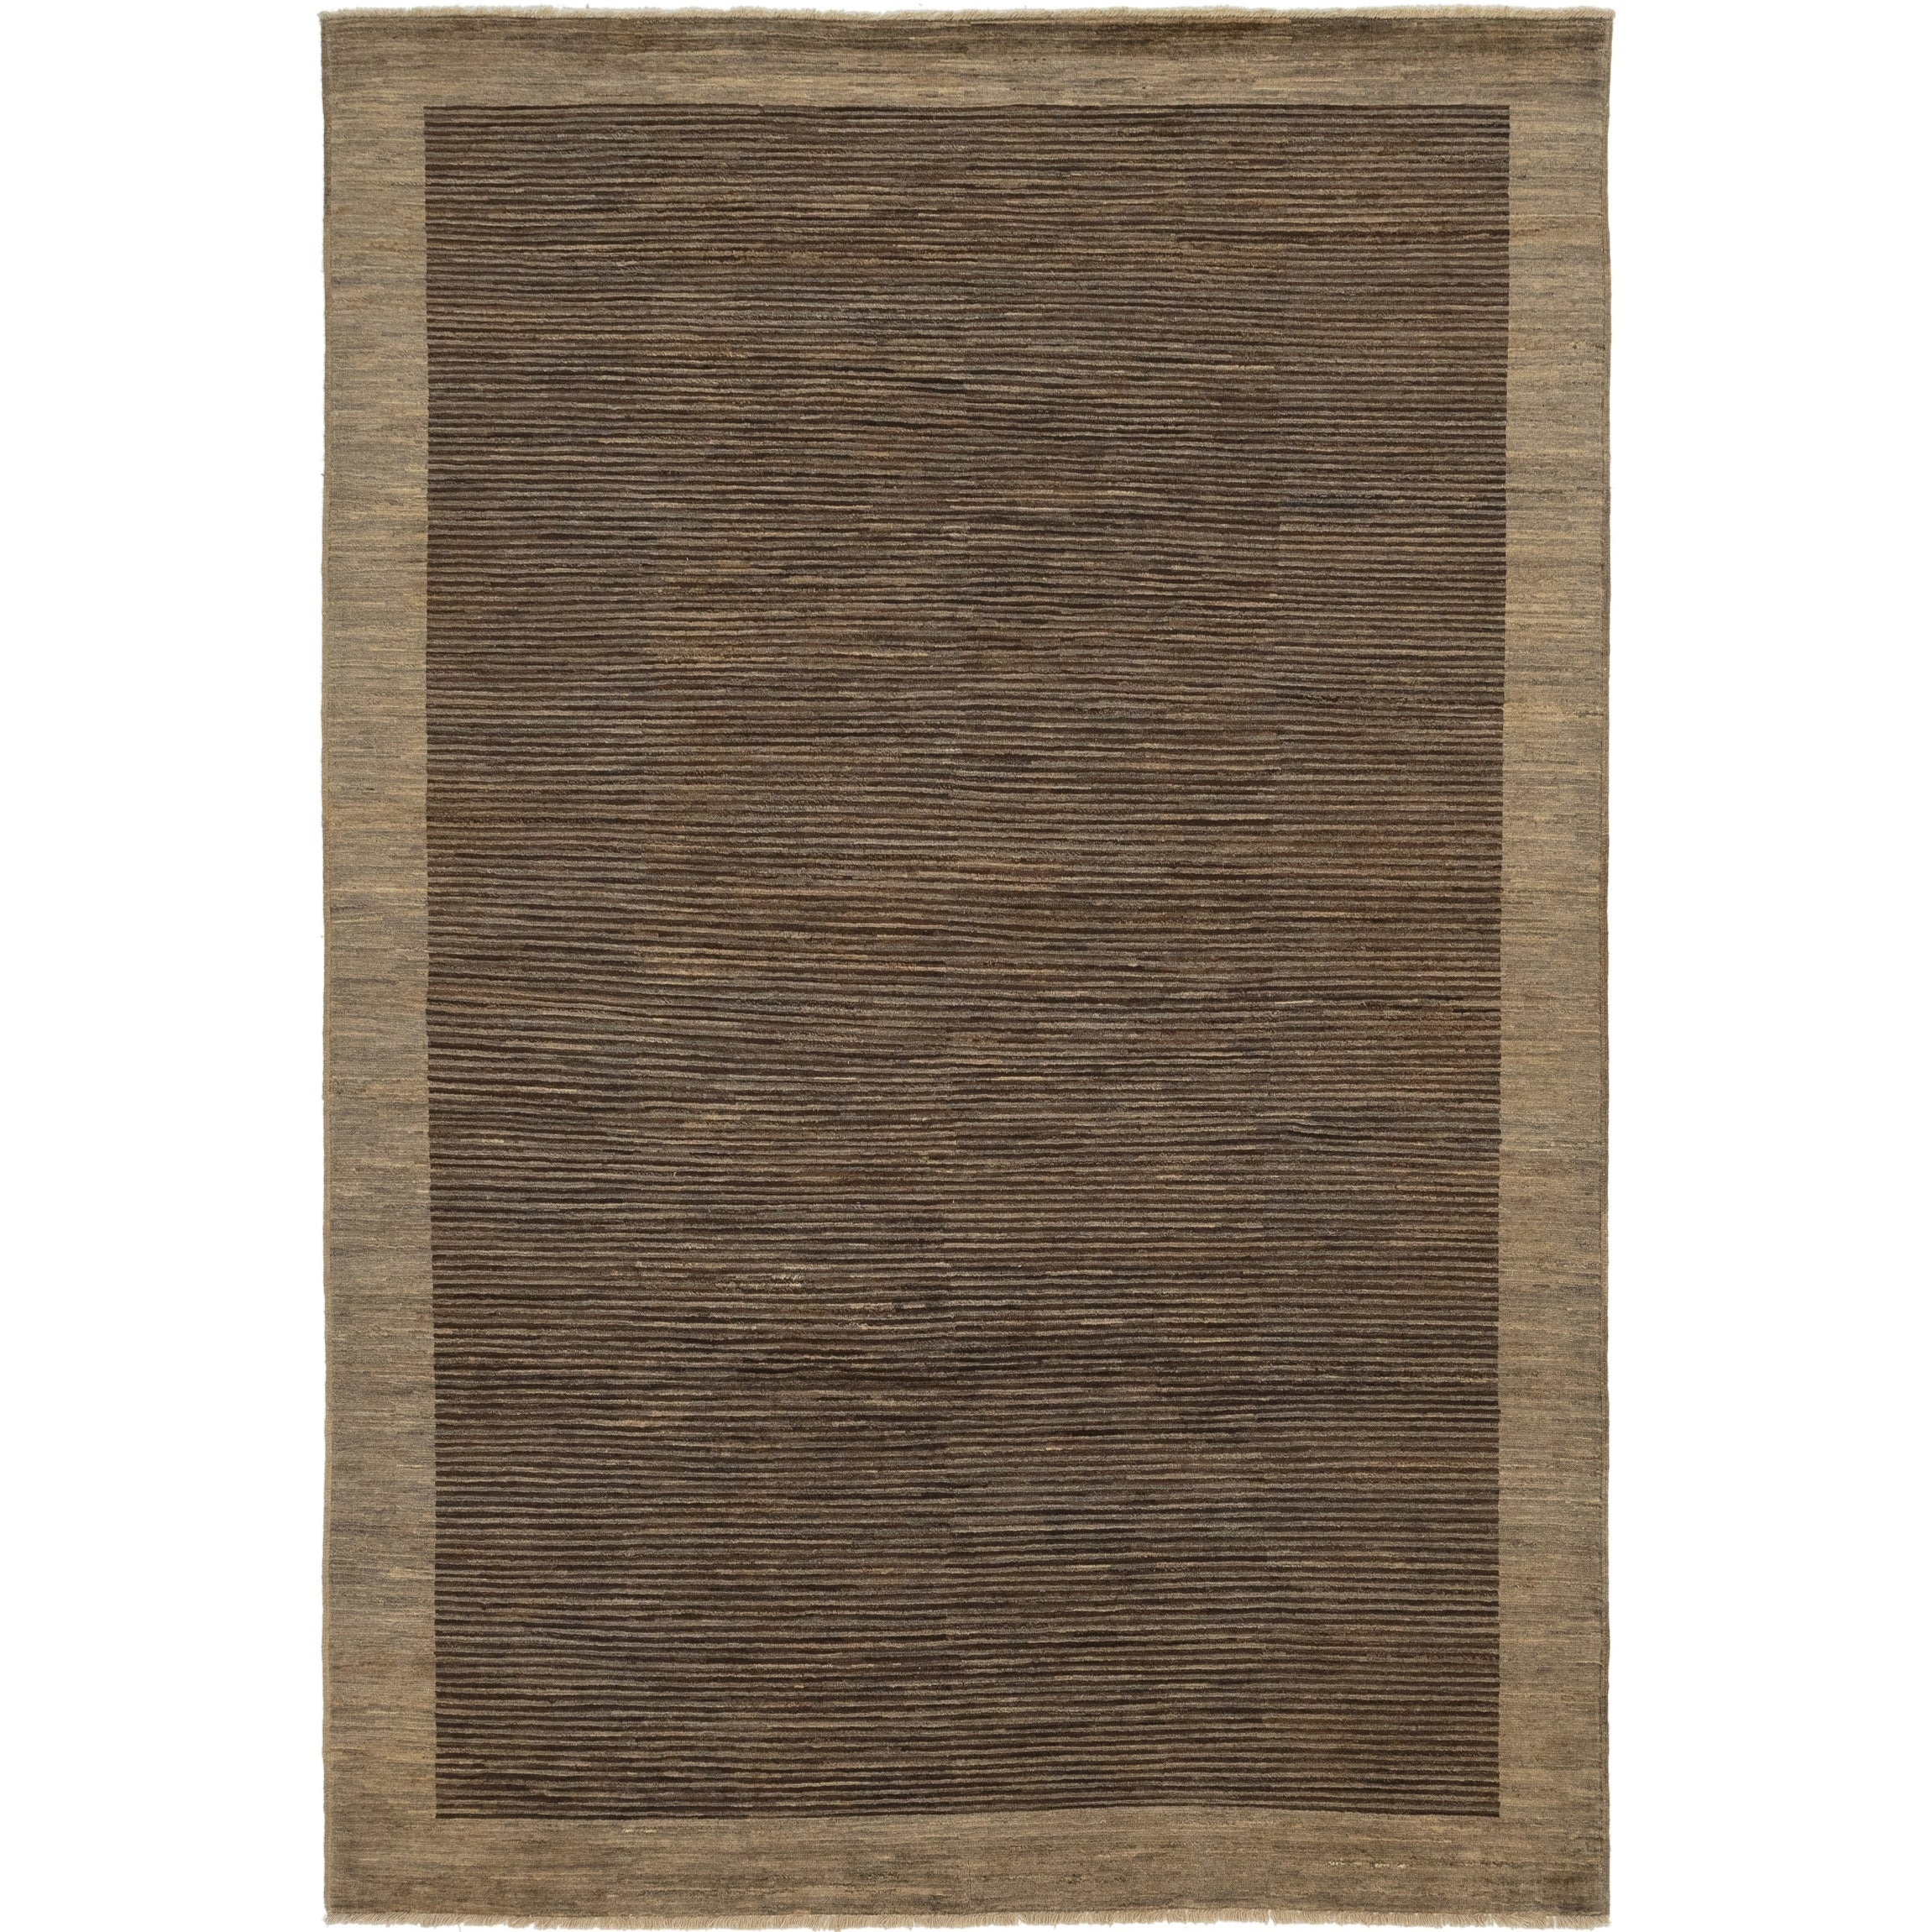 Hand Knotted Kashkuli Gabbeh Wool Area Rug - 6 7 x 9 9 (Brown - 6 7 x 9 9)